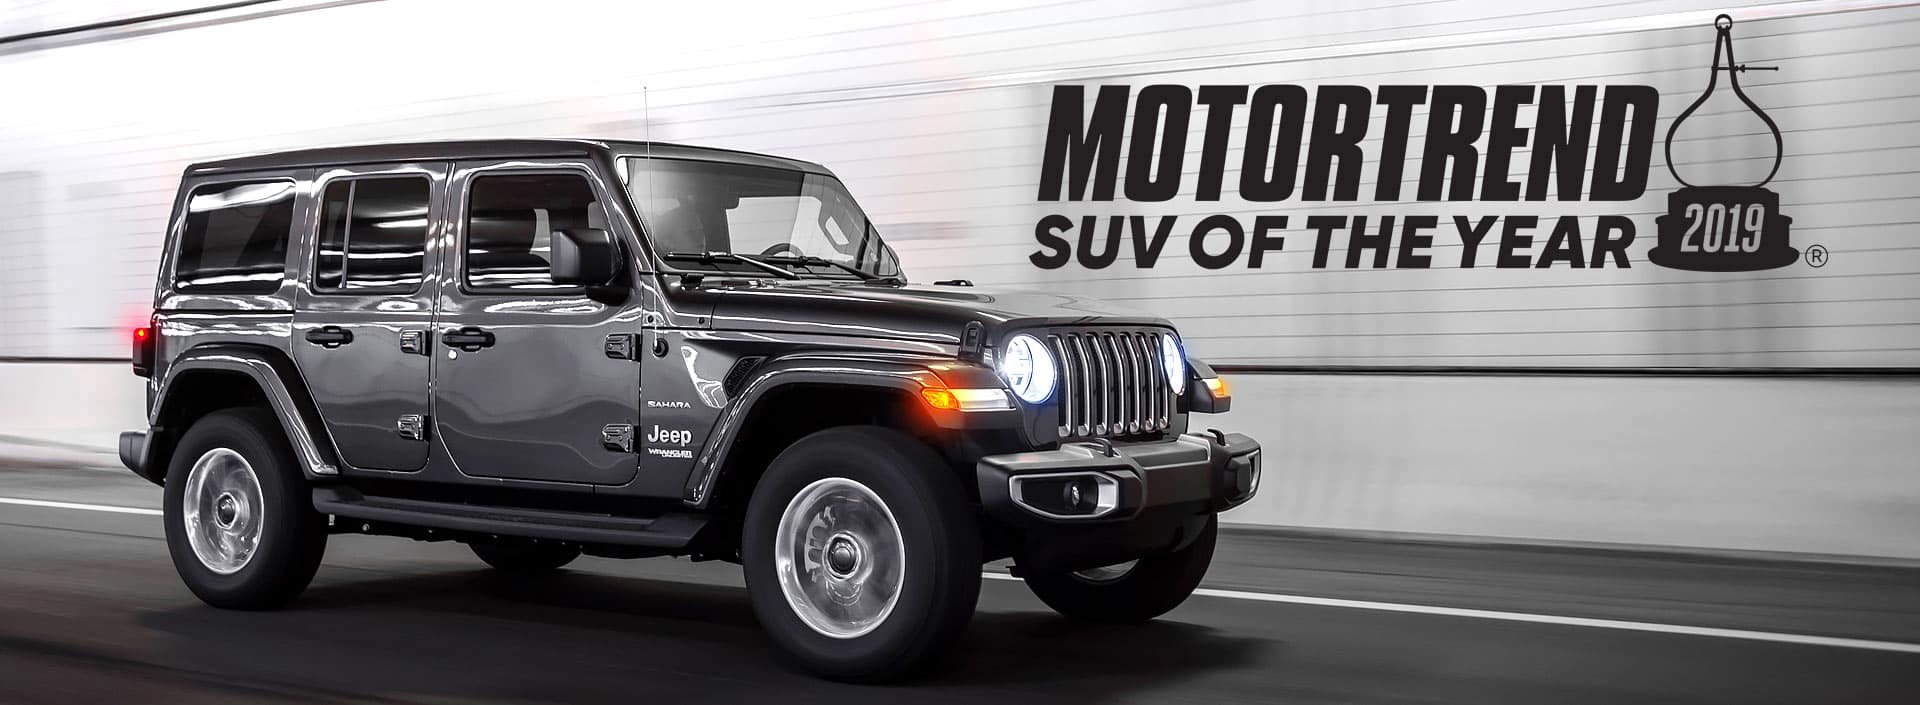 MotorTrend SUV of The Year 2019